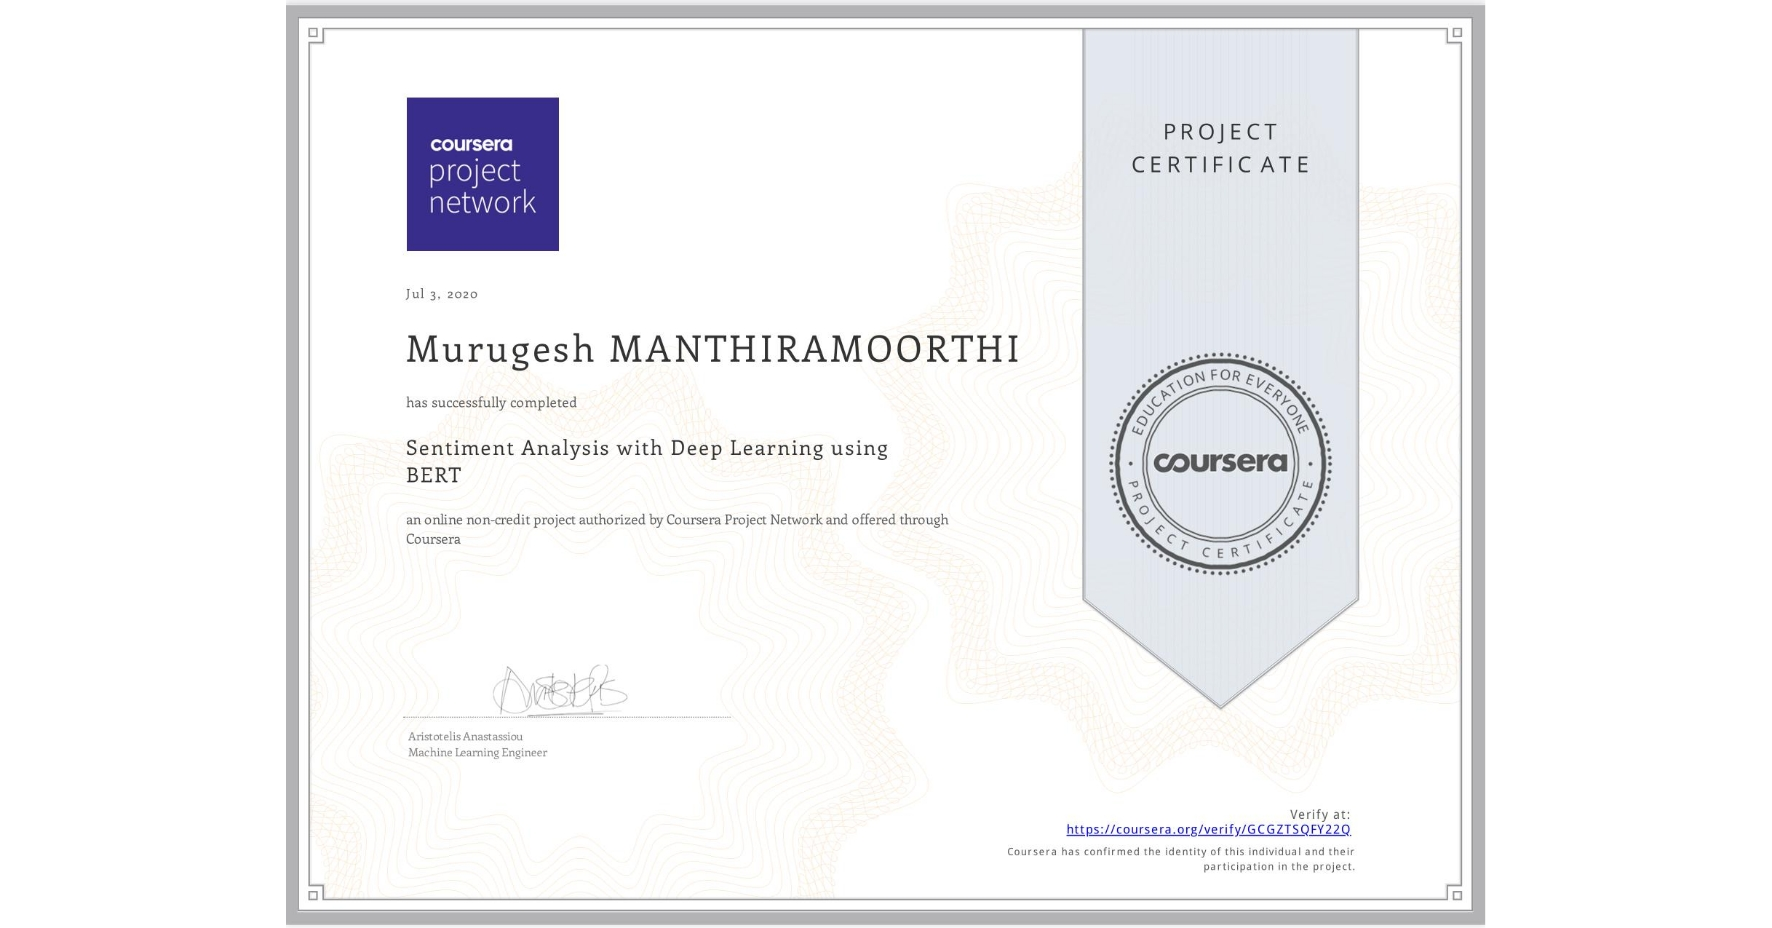 View certificate for Murugesh Manthiramoorthi, Sentiment Analysis with Deep Learning using BERT, an online non-credit course authorized by Coursera Project Network and offered through Coursera